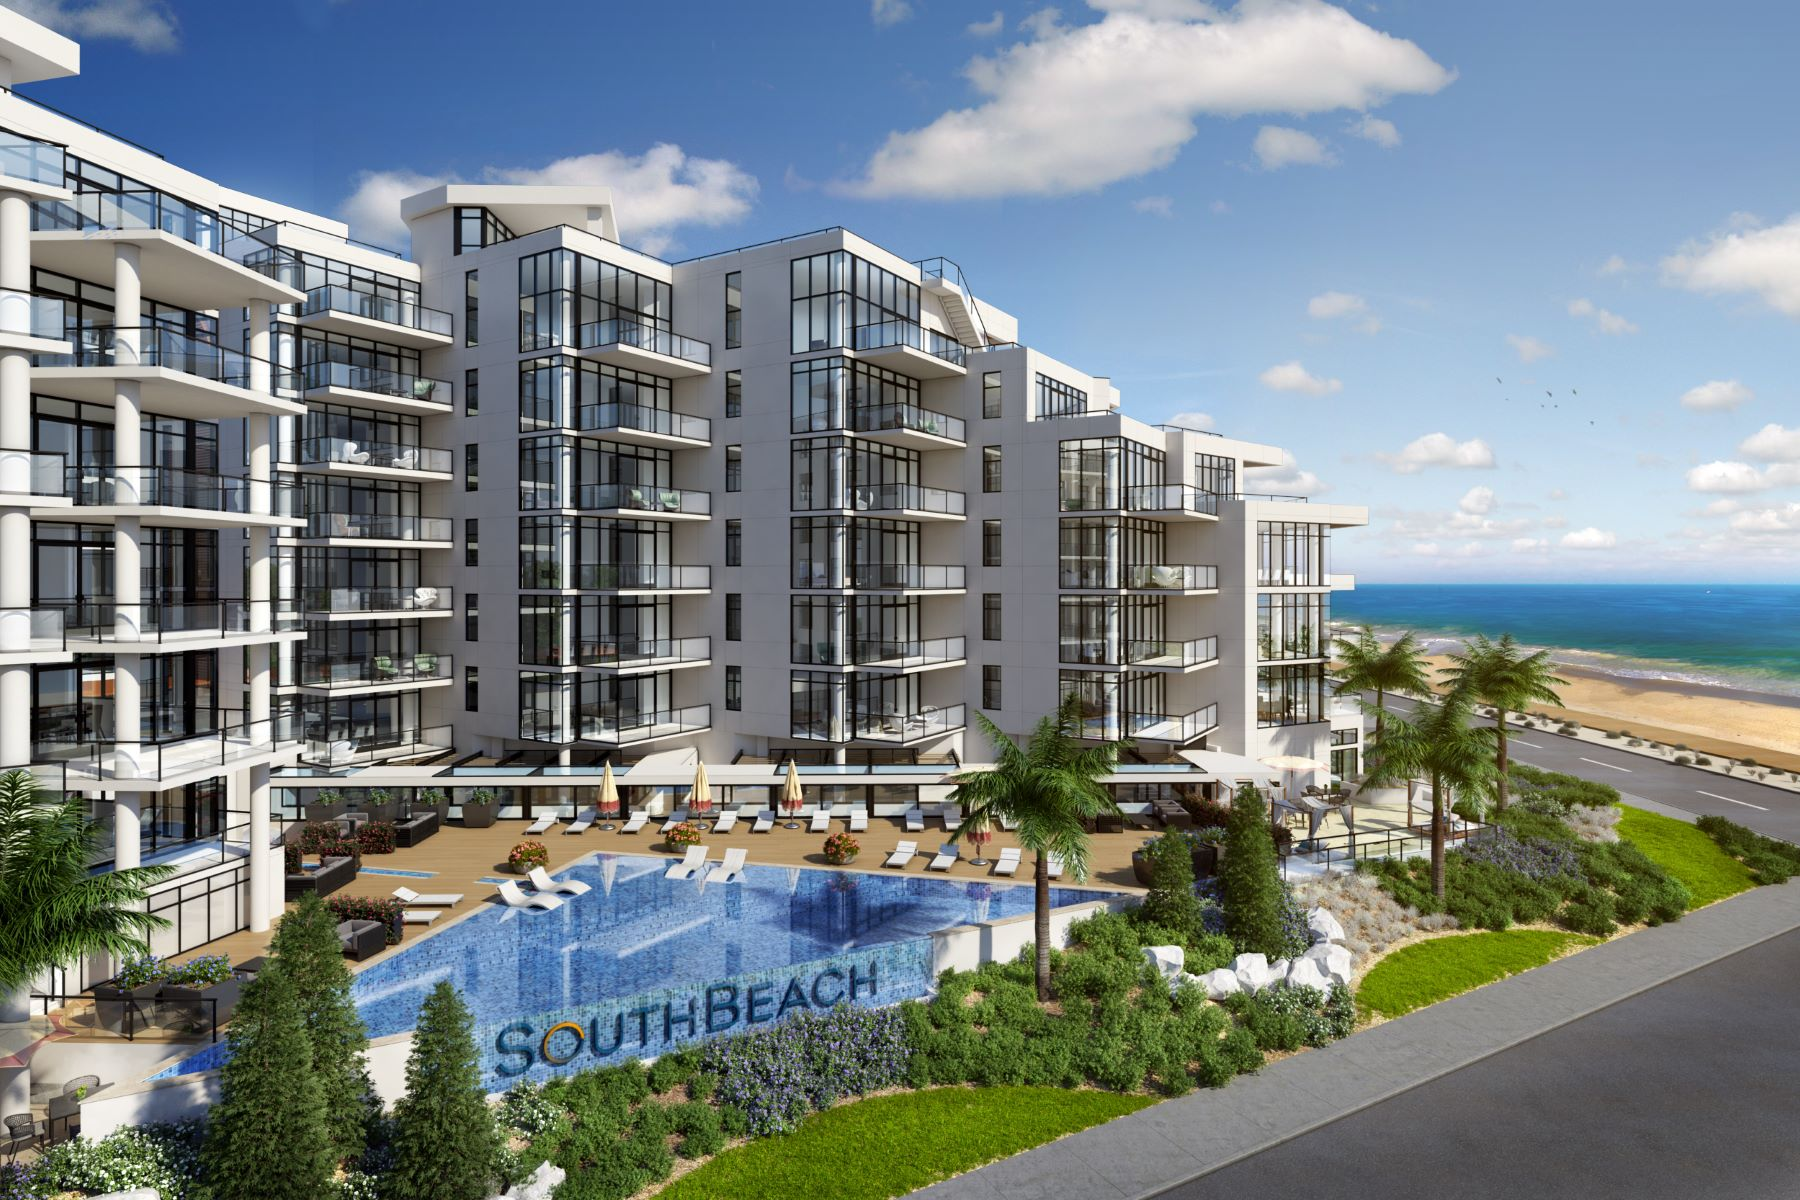 Condominiums for Sale at South Beach at Long Branch 350 Ocean Avenue 103/206 Long Branch, New Jersey 07740 United States